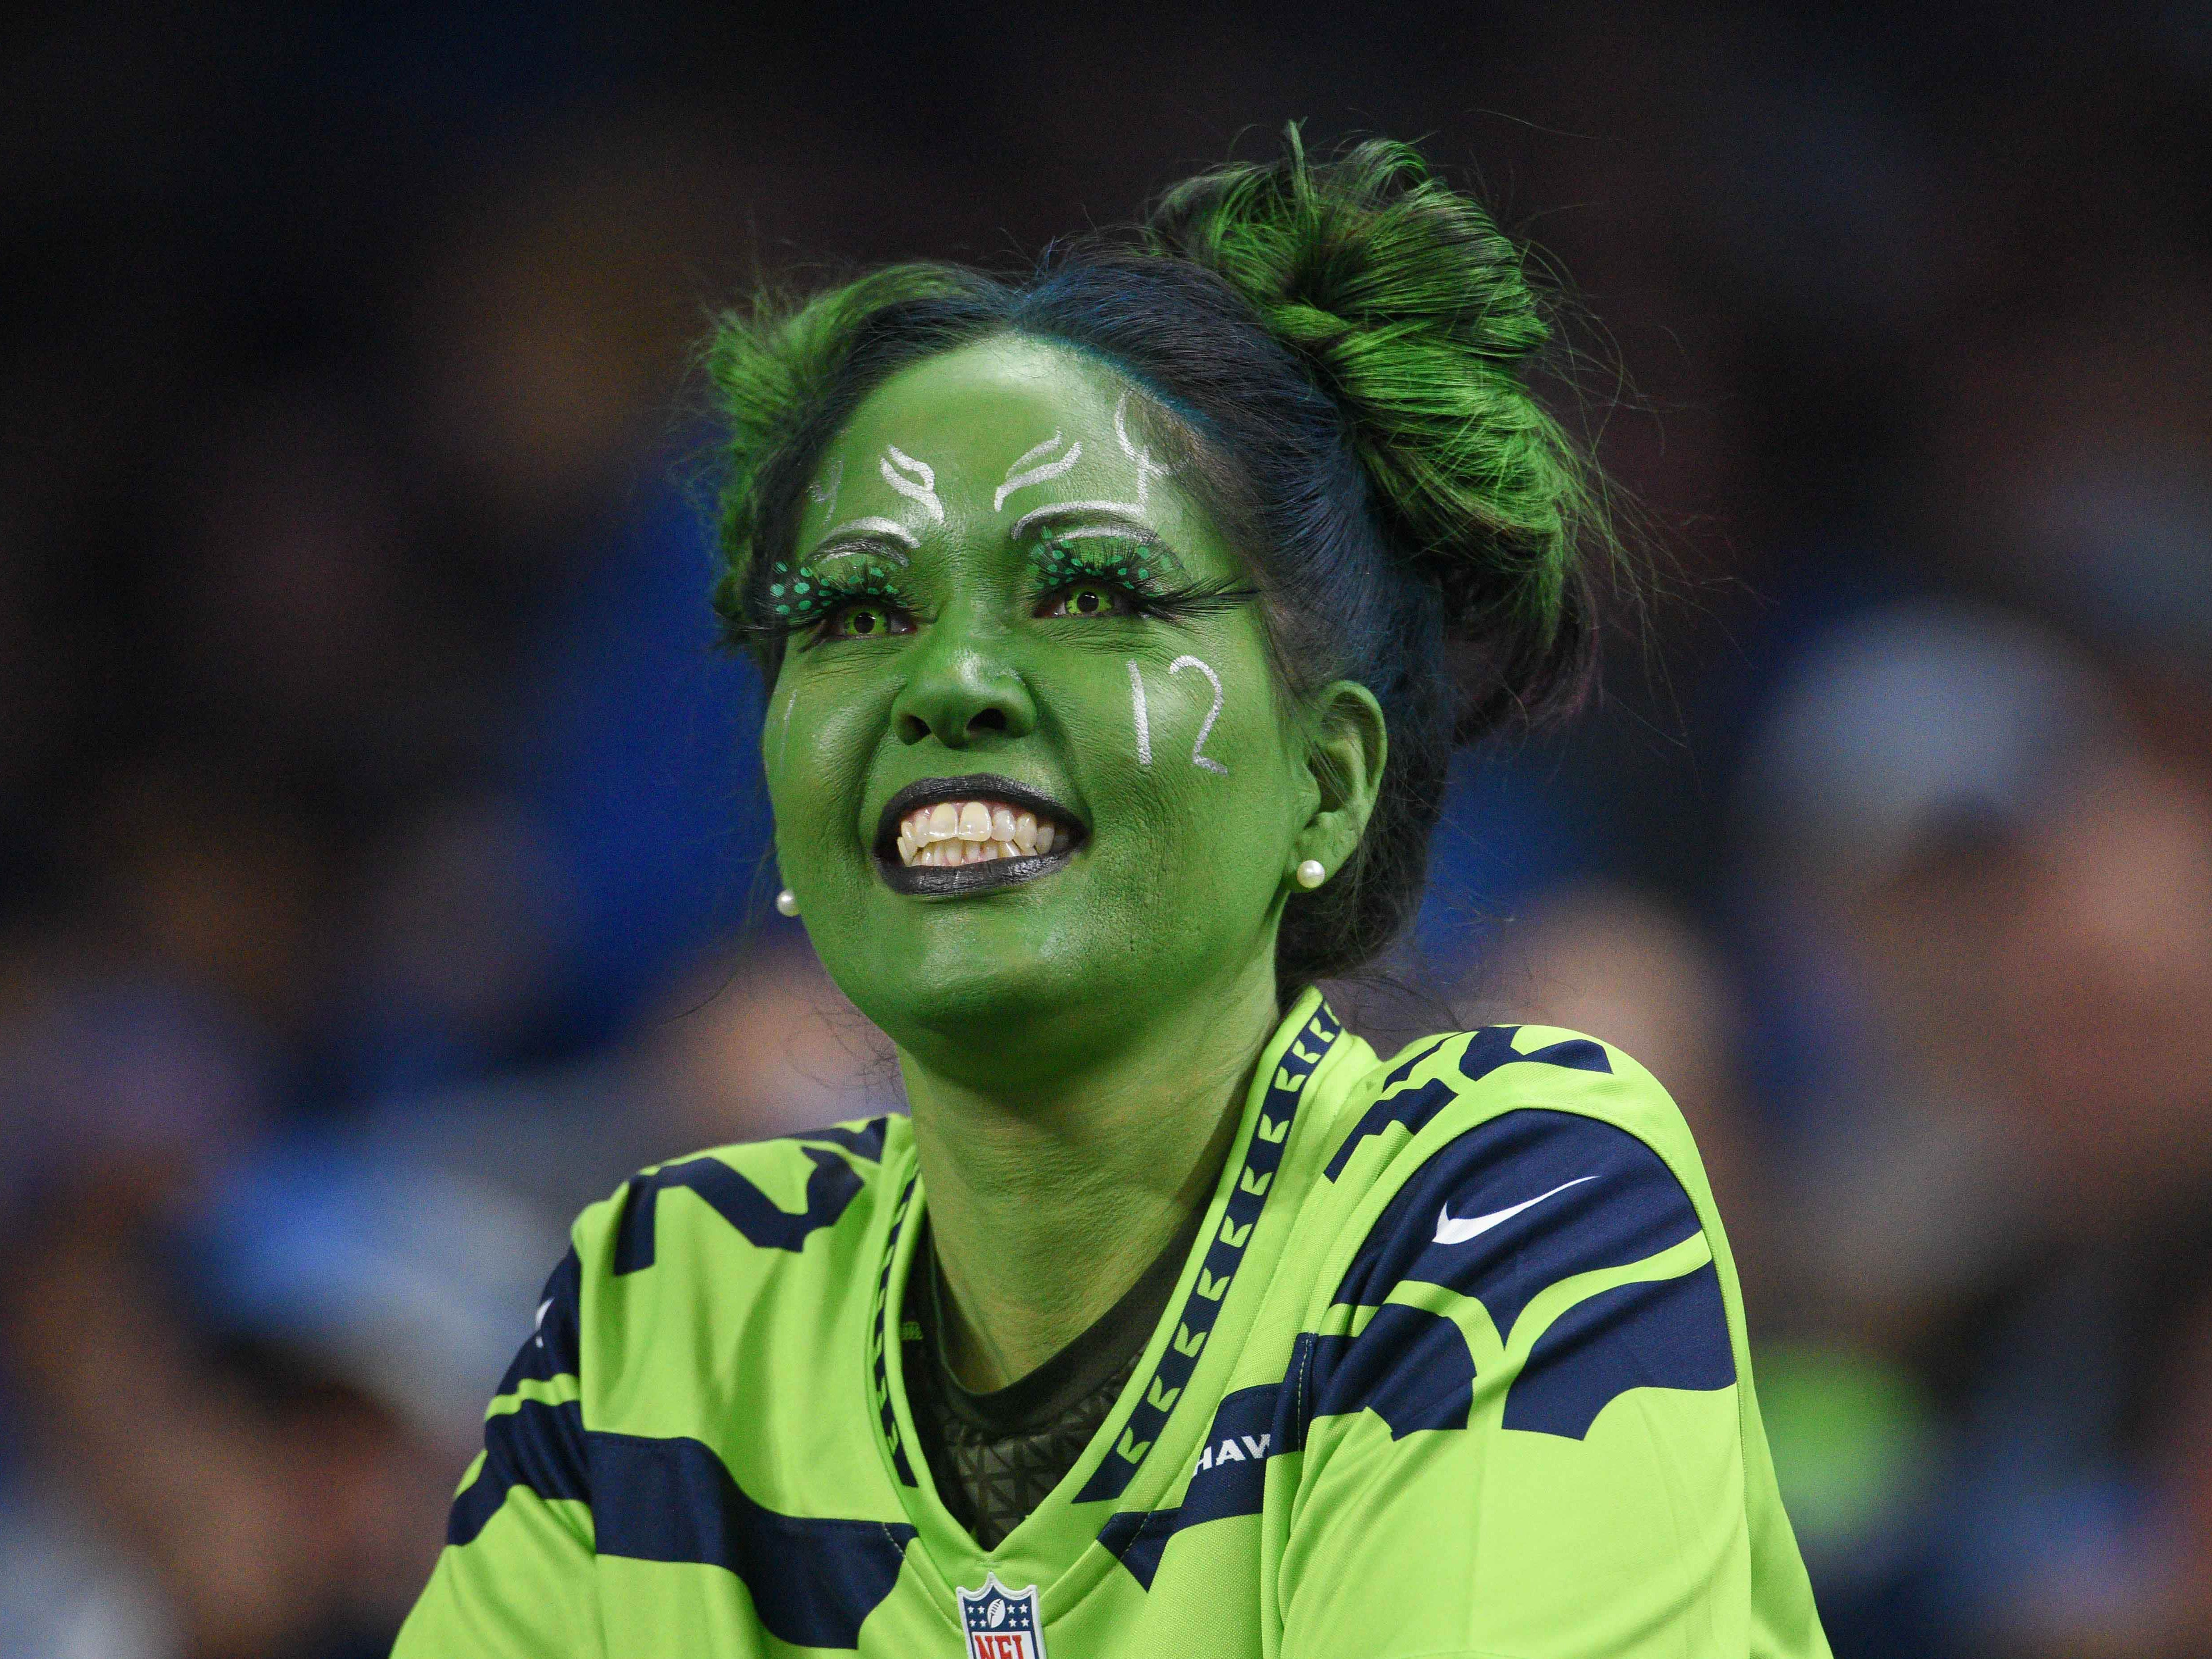 A Seattle Seahawks fan looks on during the game against the Detroit Lions at Ford Field.